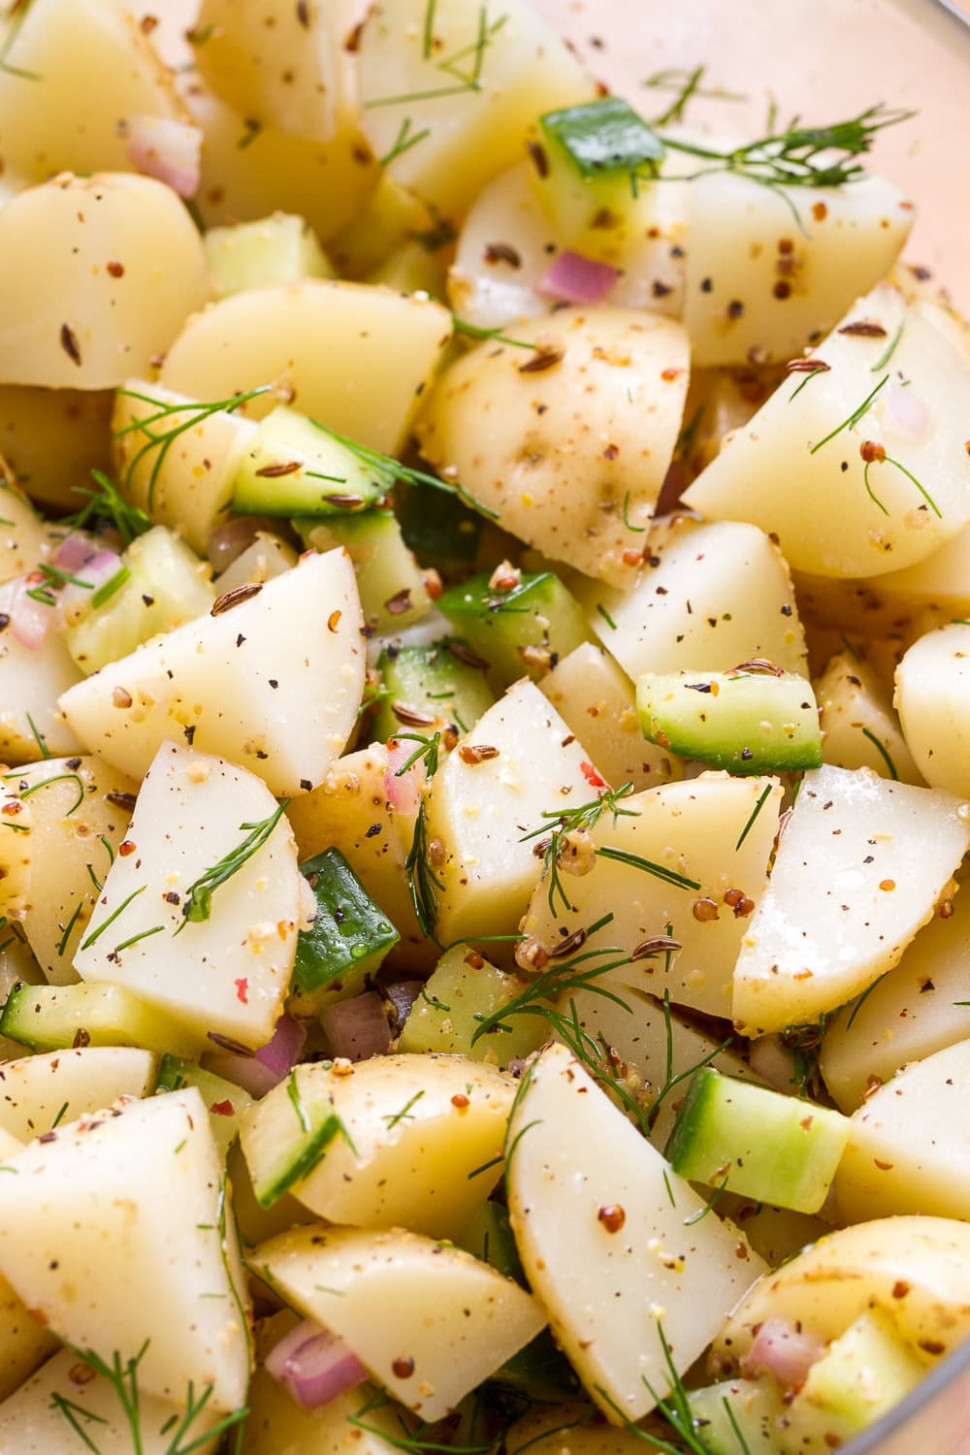 GERMAN POTATO SALAD WITH DILL - THE SIMPLE VEGANISTA - recipe vegetarian german potato salad